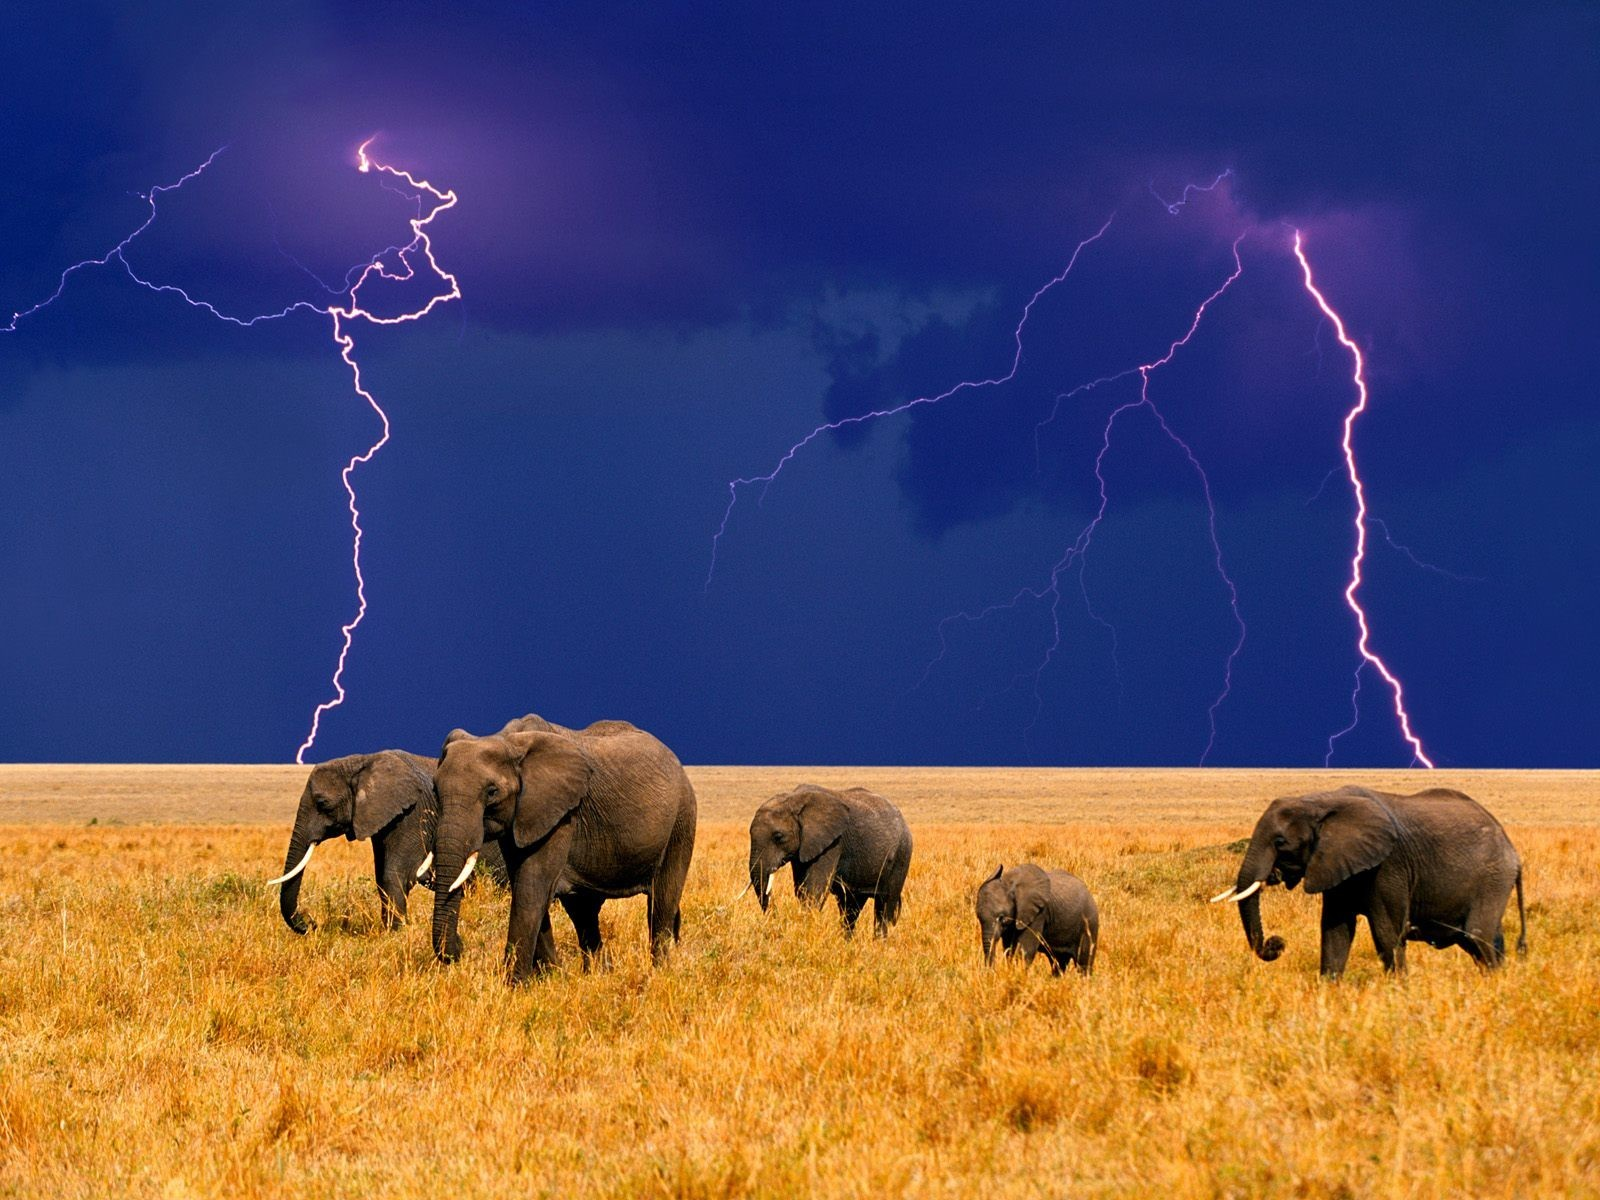 Animals elephants Lightning baby HD Wallpaper